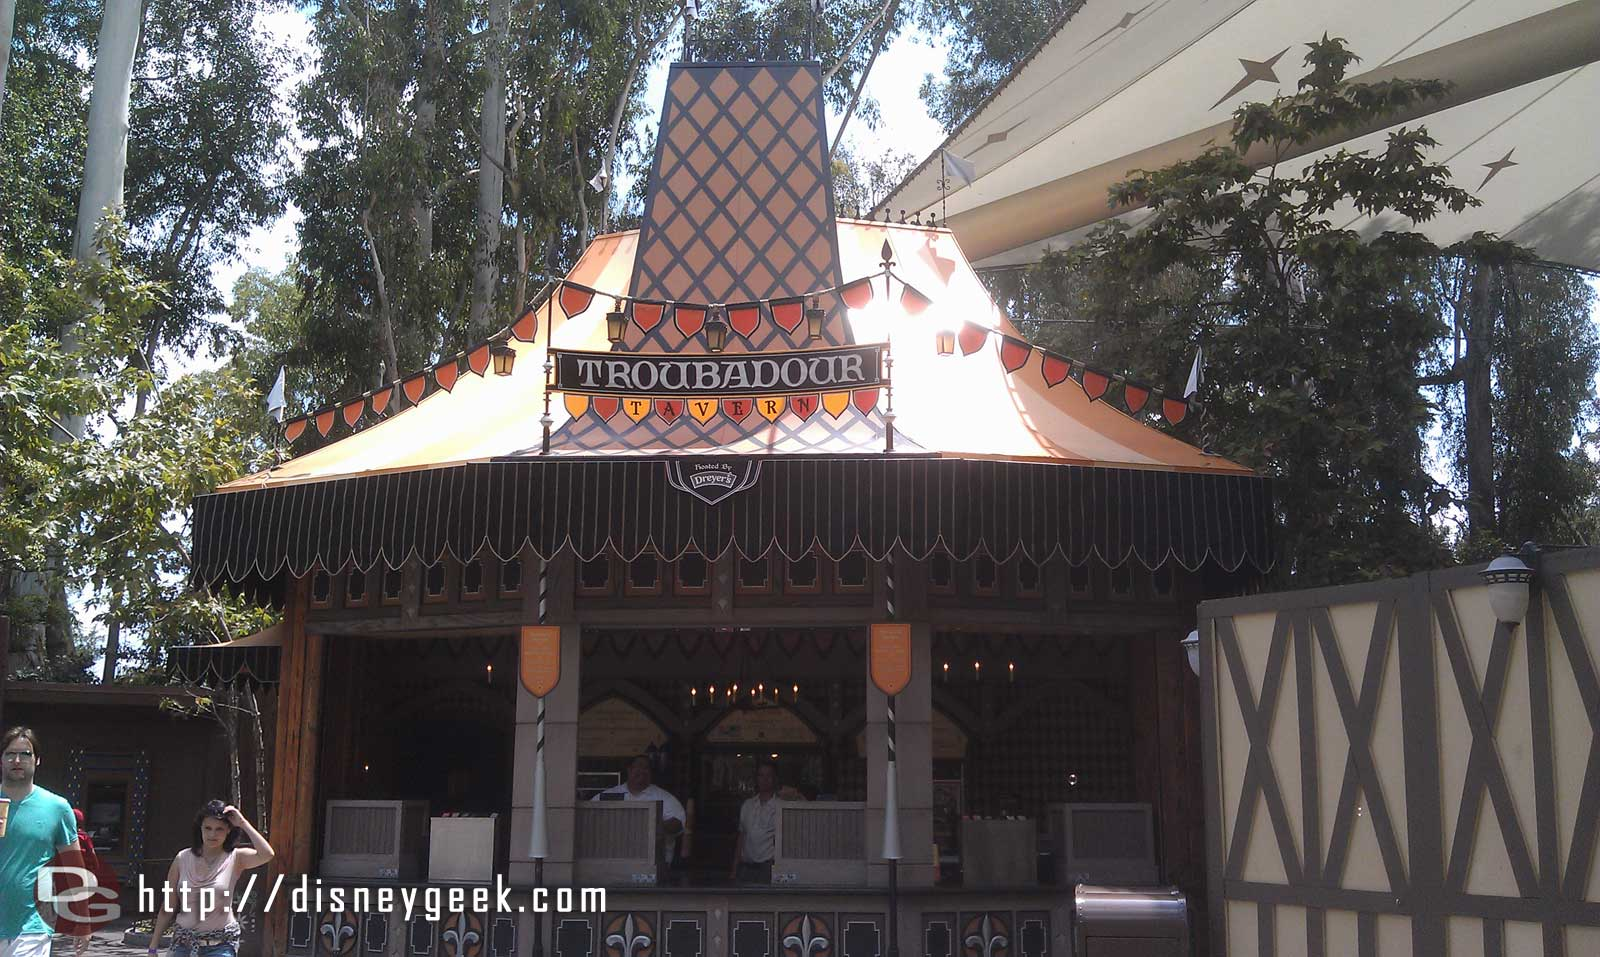 Troubadour Tavern has reopened.